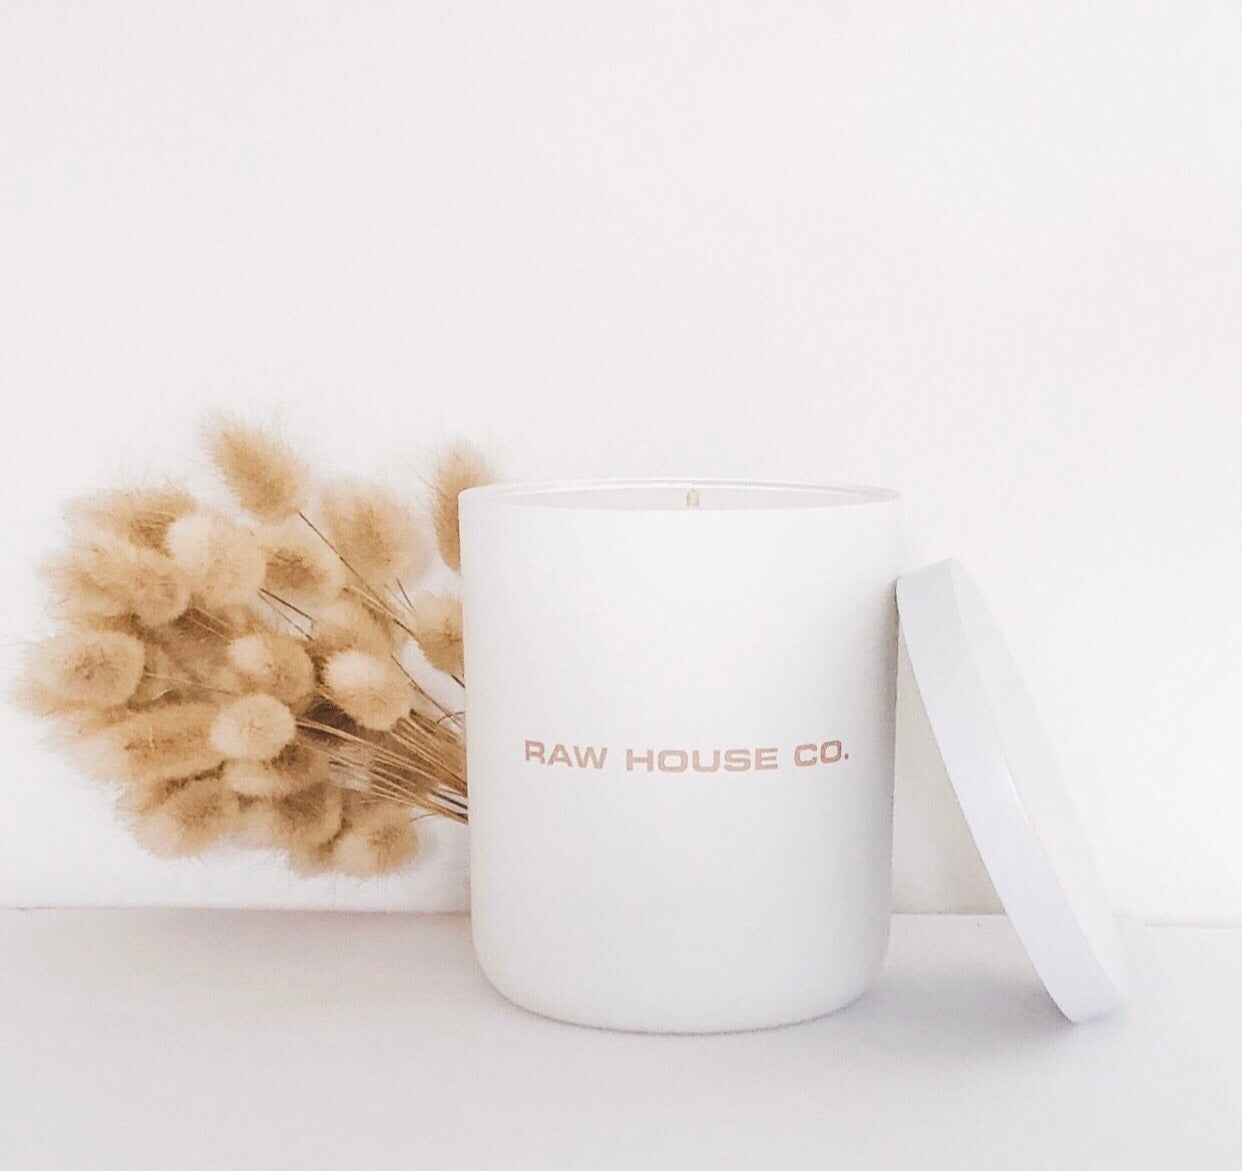 THE BLOOM: JAPANESE HONEYSUCKLE SOY CANDLE